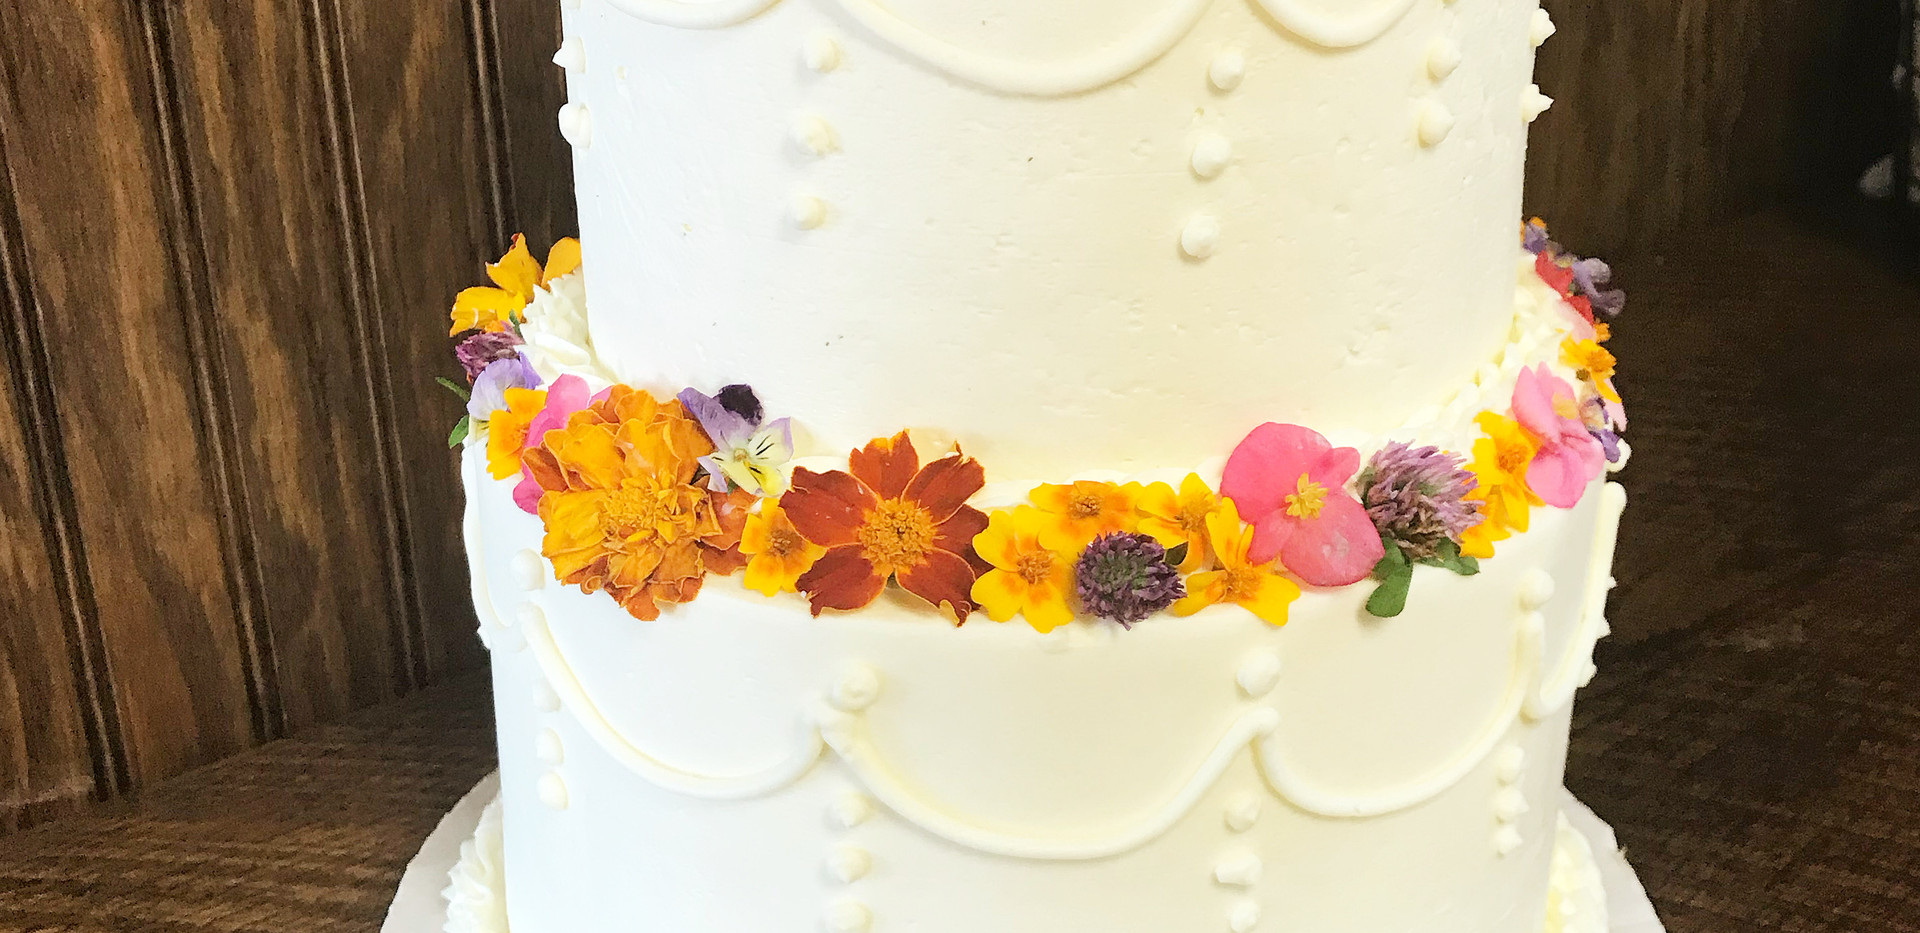 a two tier cake with fresh edible flowers